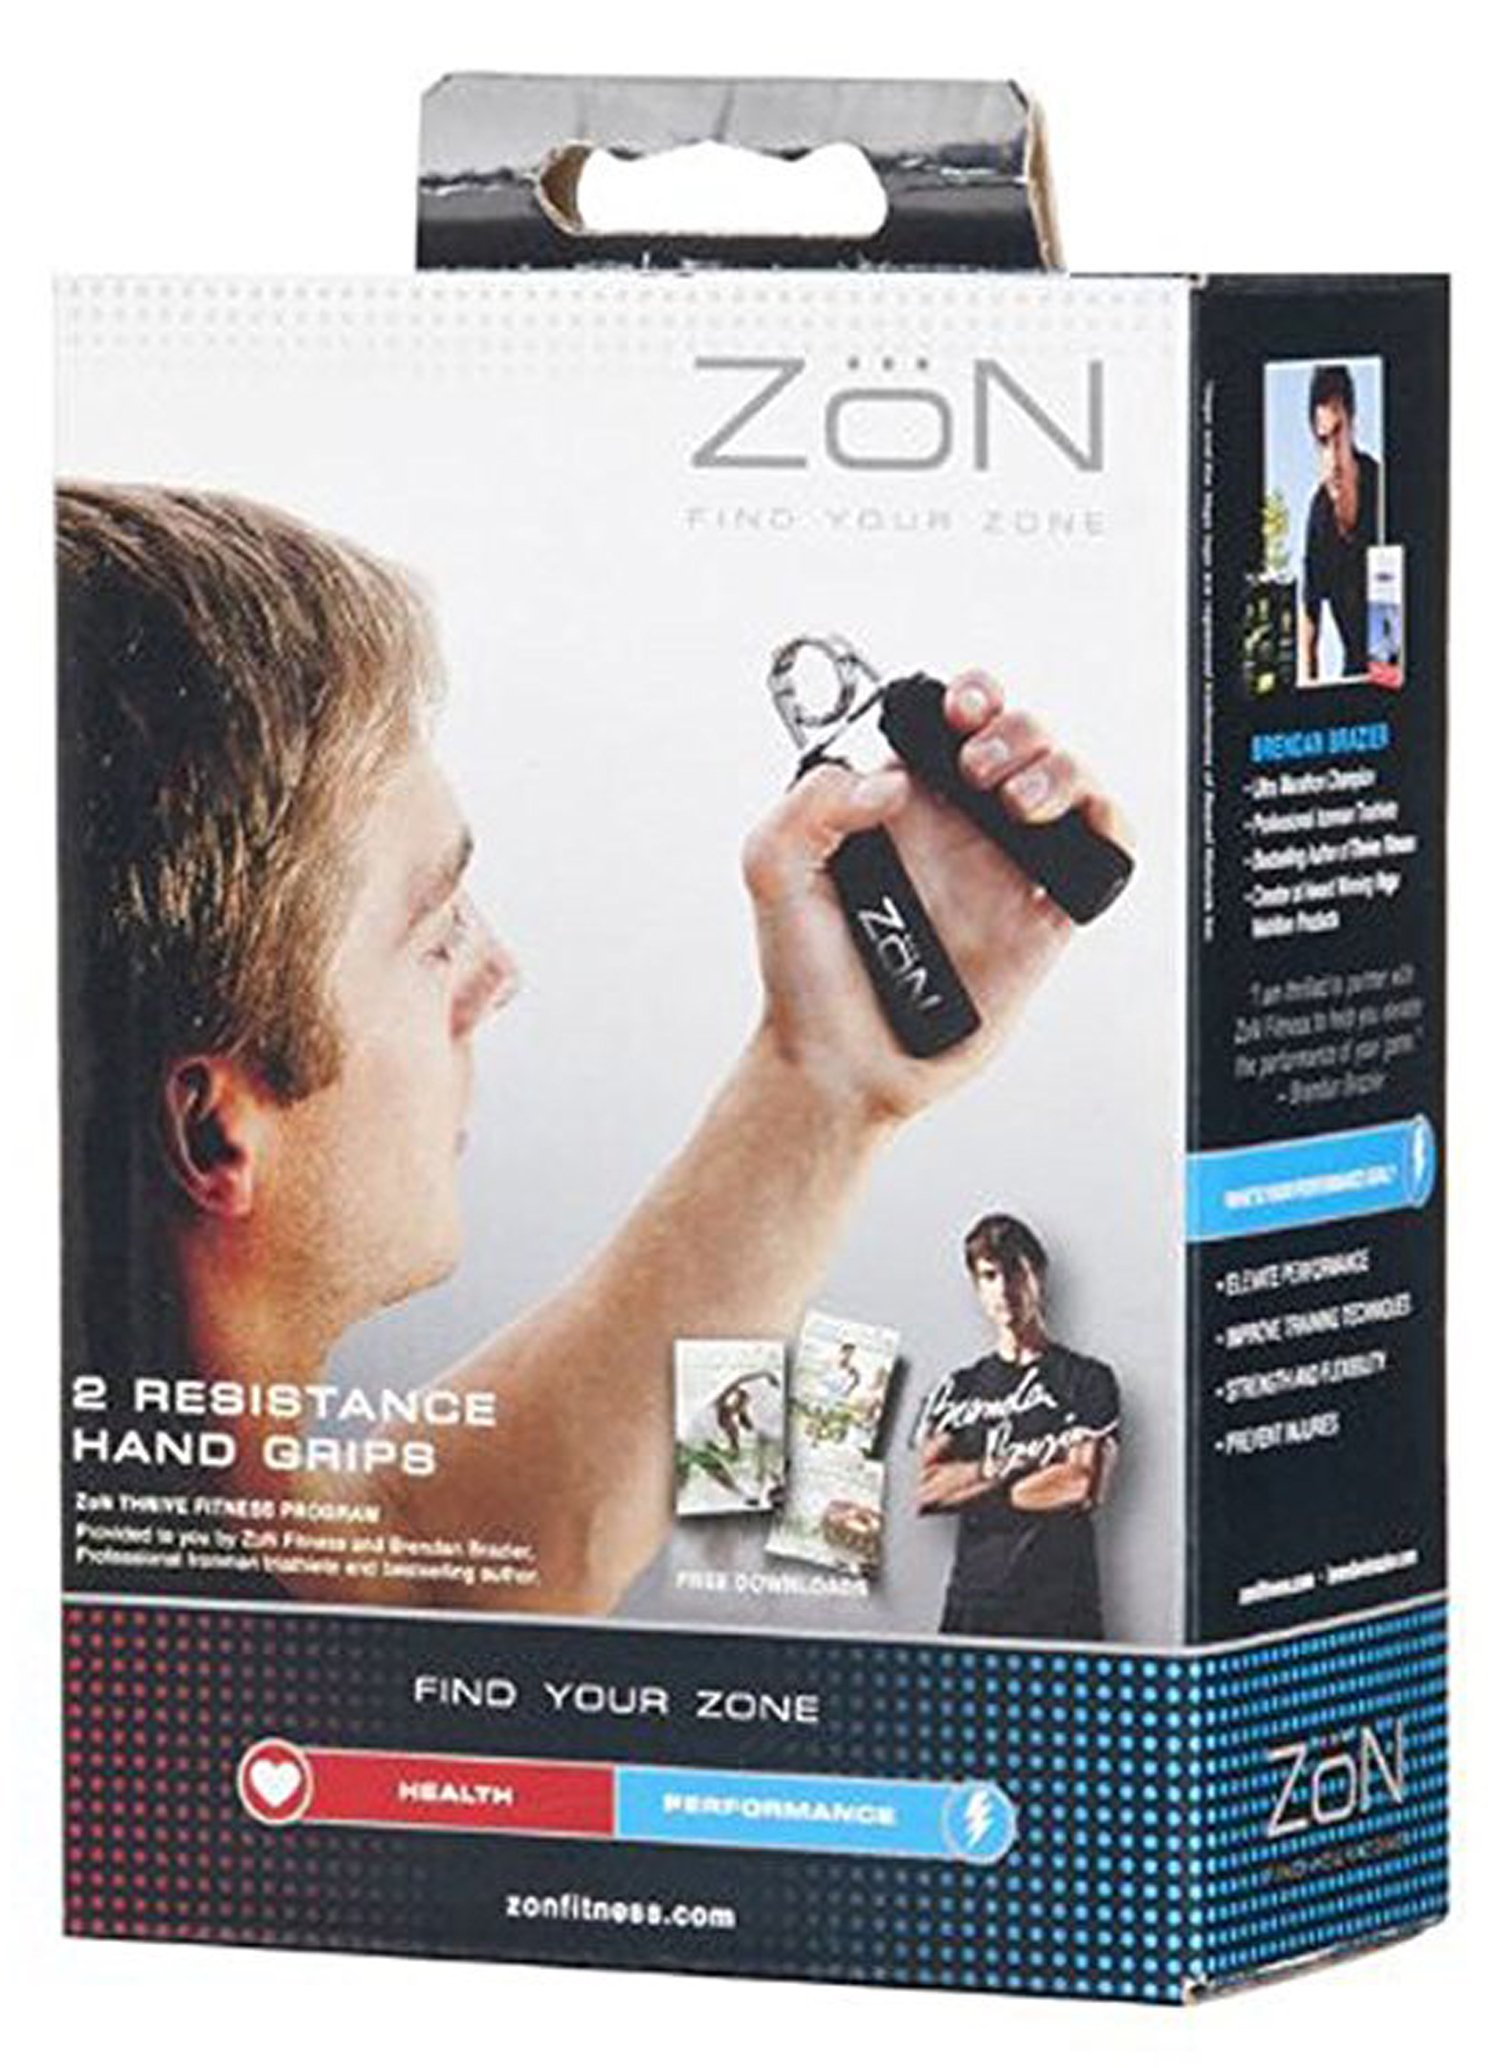 ZoN Resistance Strength Hand Grips - 2 Pack by ZON